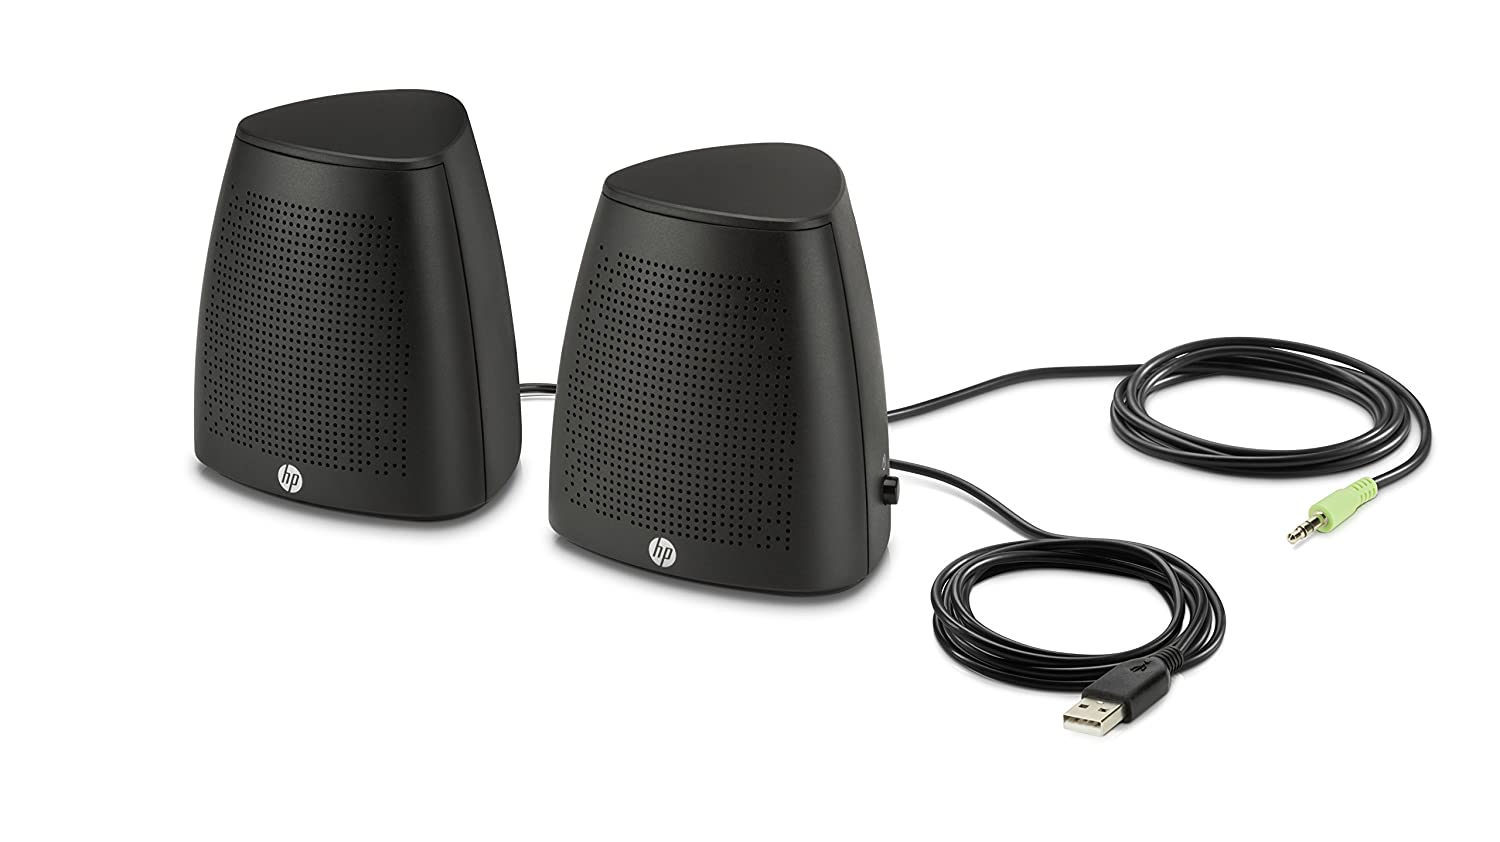 7120t1GygVL. SL1500  - Best Speakers Under 1000 in India - Mobiles, Laptops & Computers